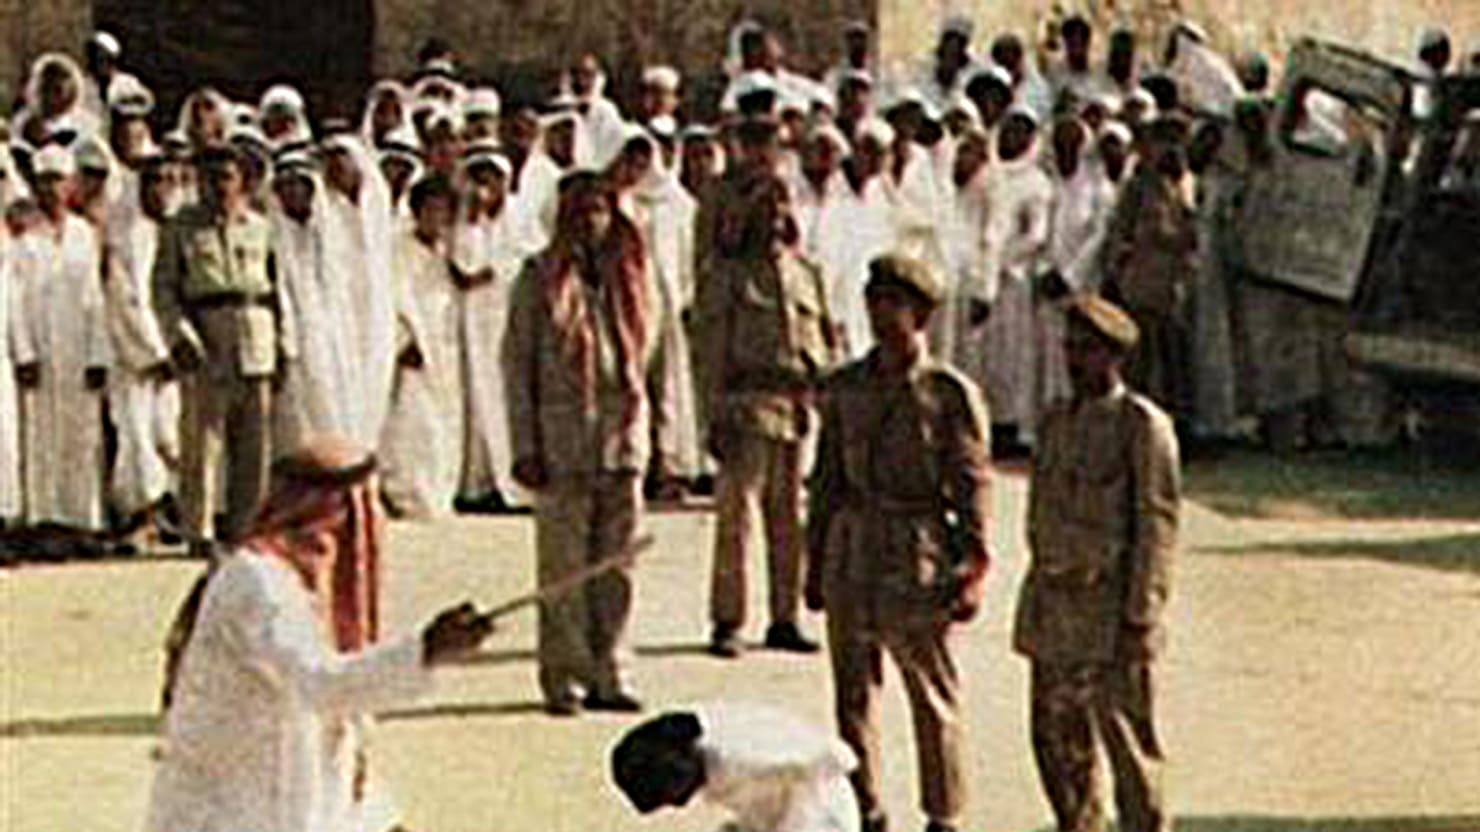 100 Beheadings, 6 Months: Why the Saudi Kingdom Is on an Execution Spree